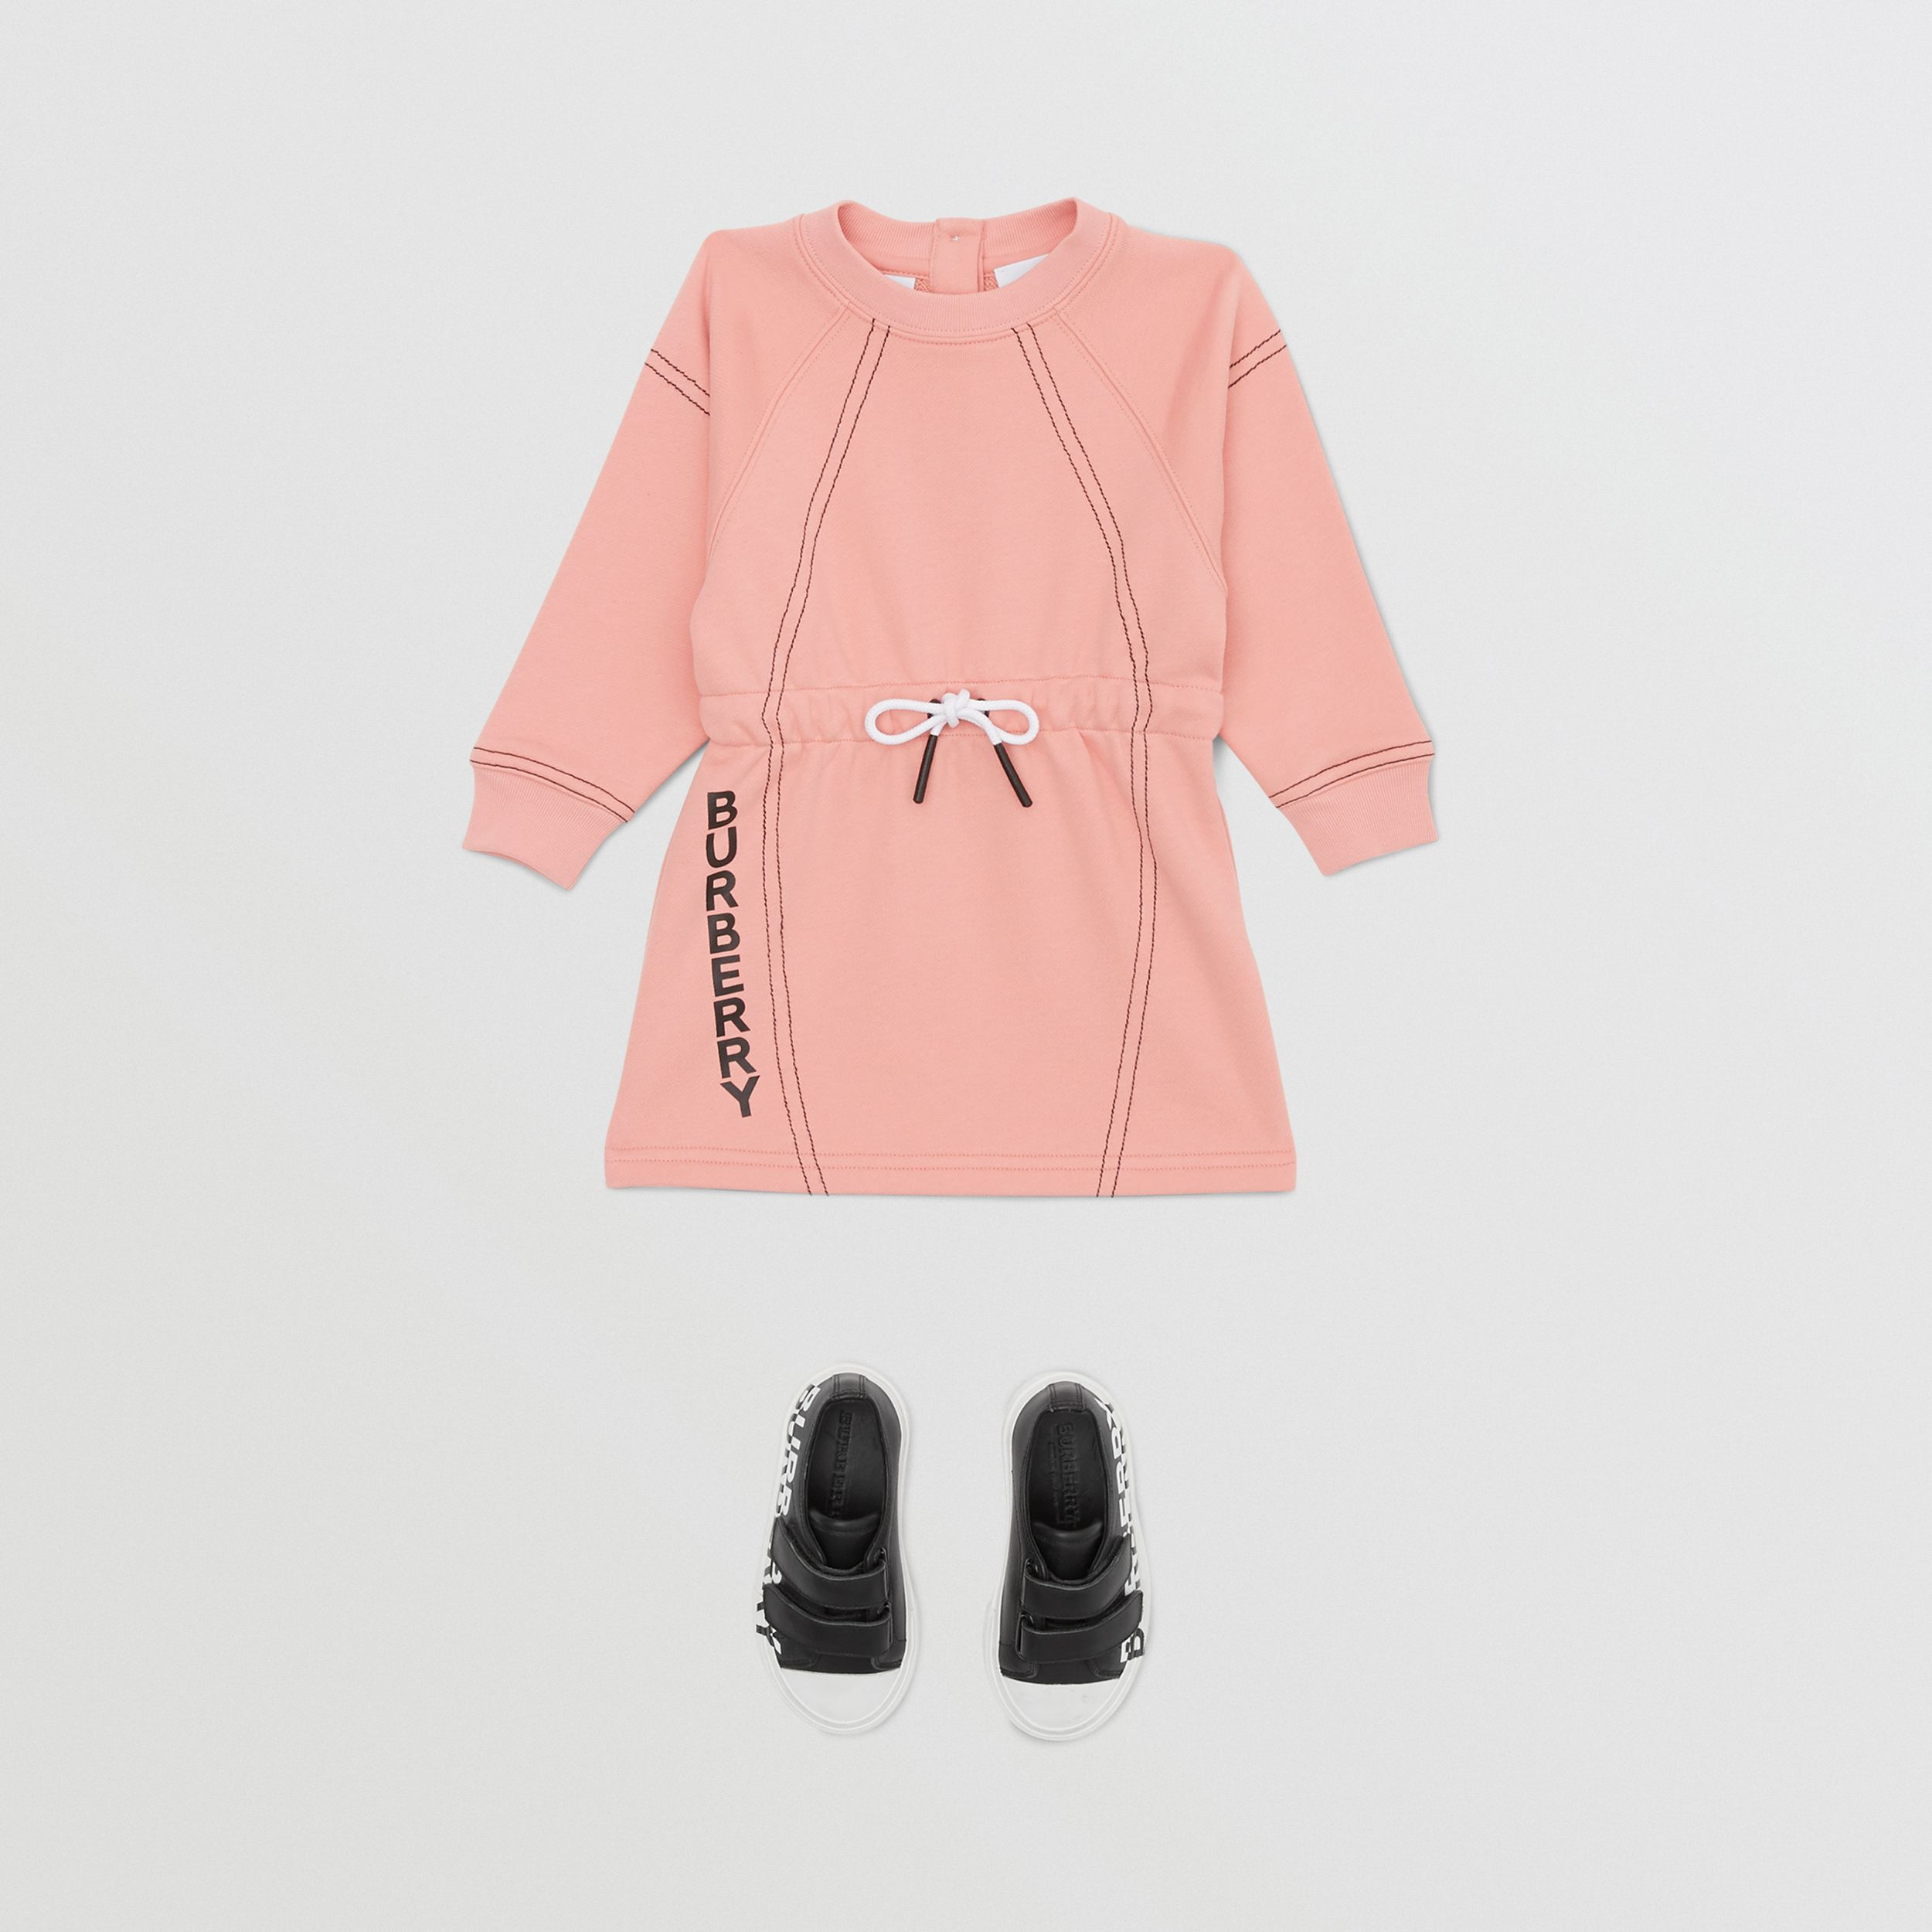 Logo Print Cotton Sweater Dress in Peach - Children | Burberry - 3